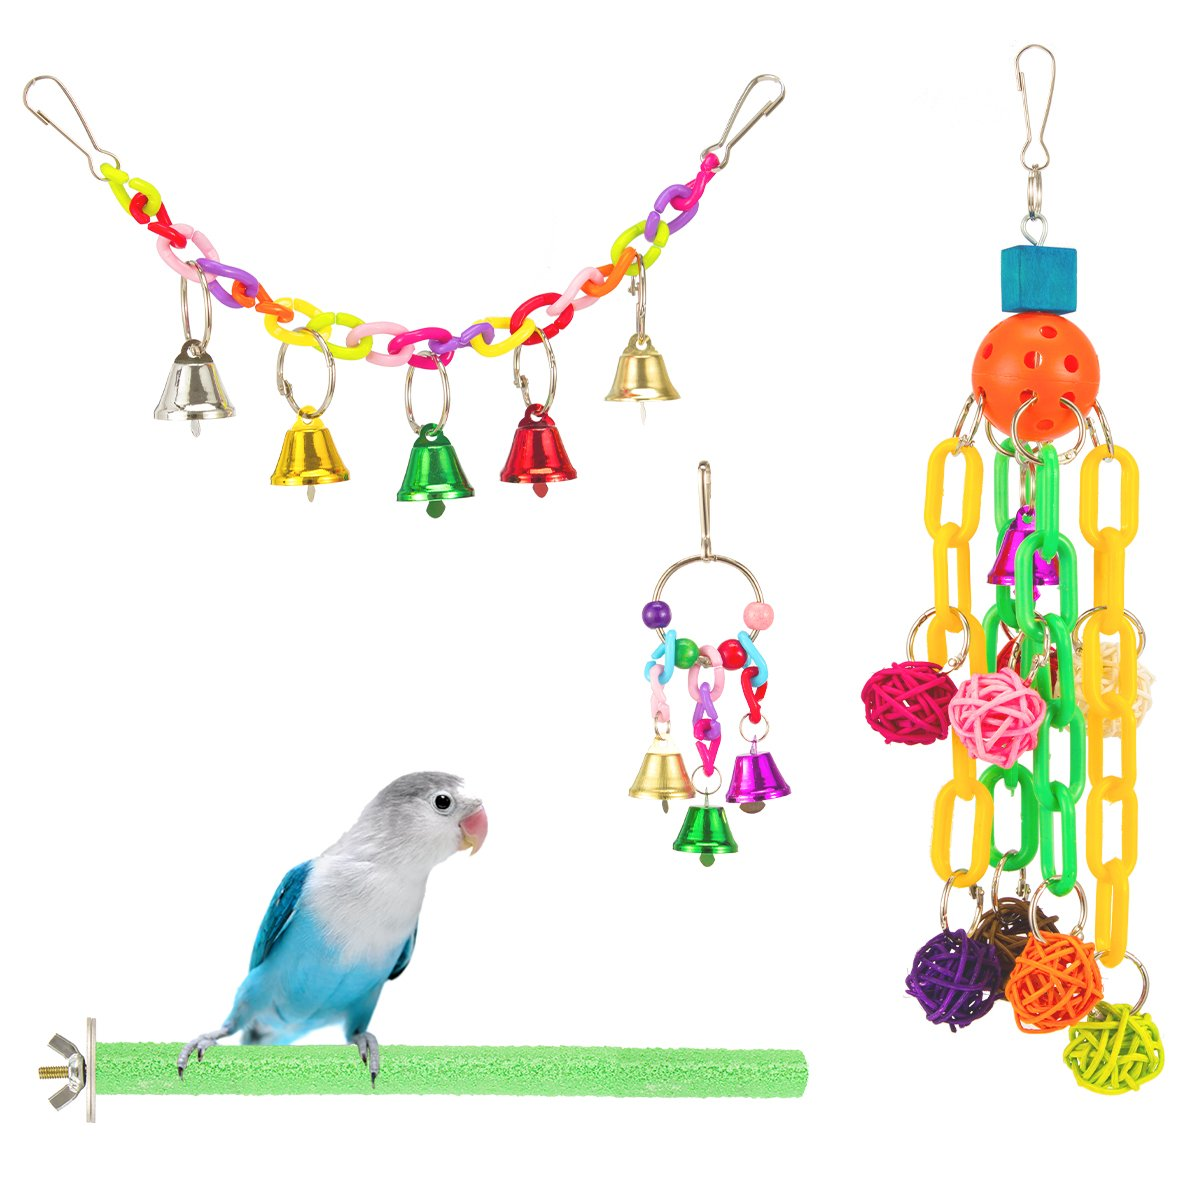 MEWTOGO 4 Pack Bird Toys - Bird Swing Toy + Colorful Beads Bells +Wooden Bird Stand +Hanging Chewing Toy for Budgie Lovebirds Conures Parakeet